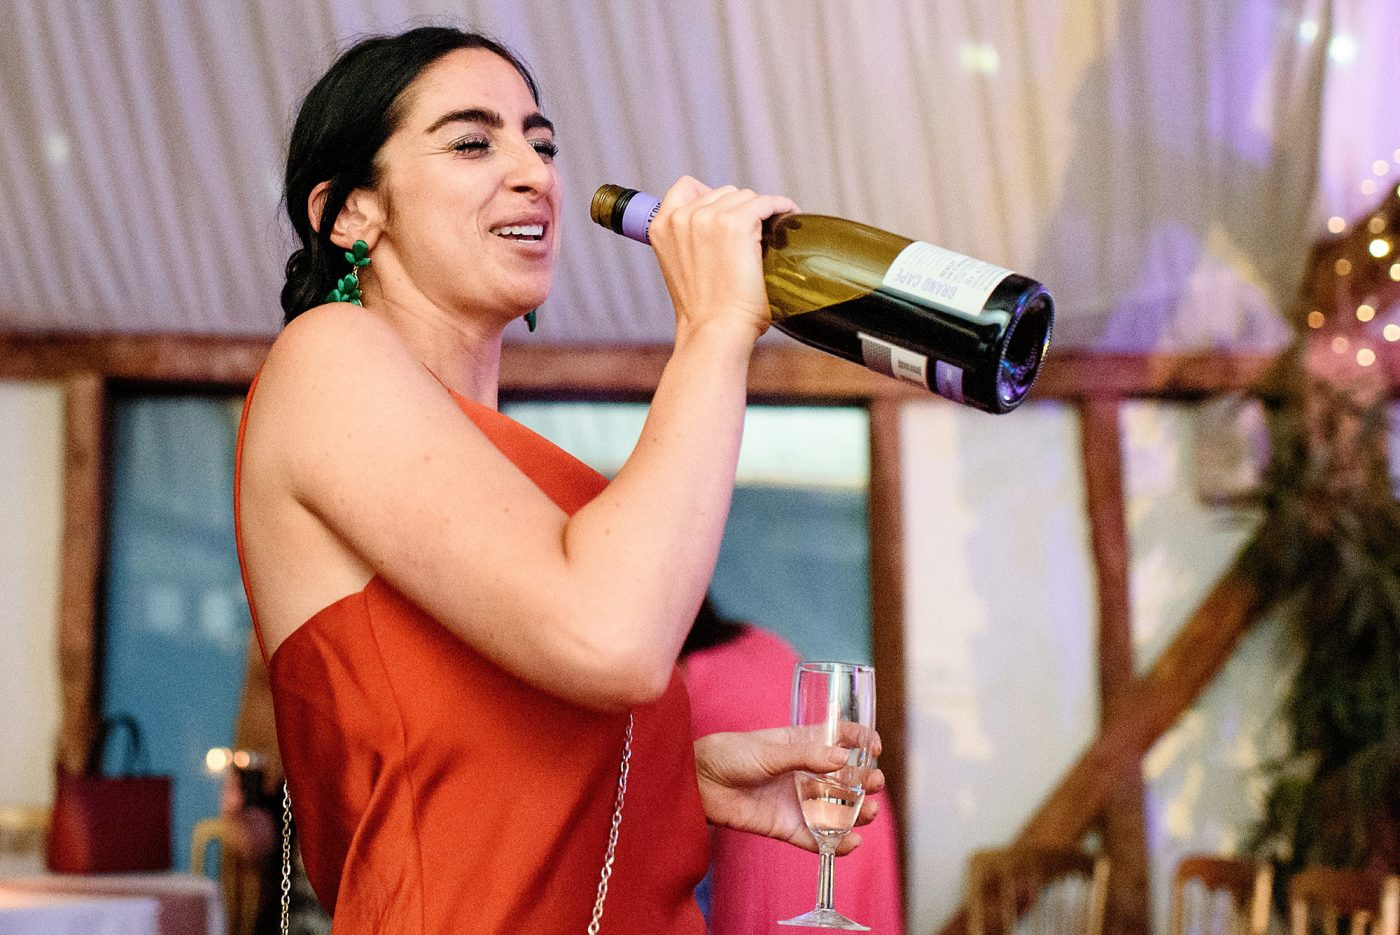 guest singing into wine bottle